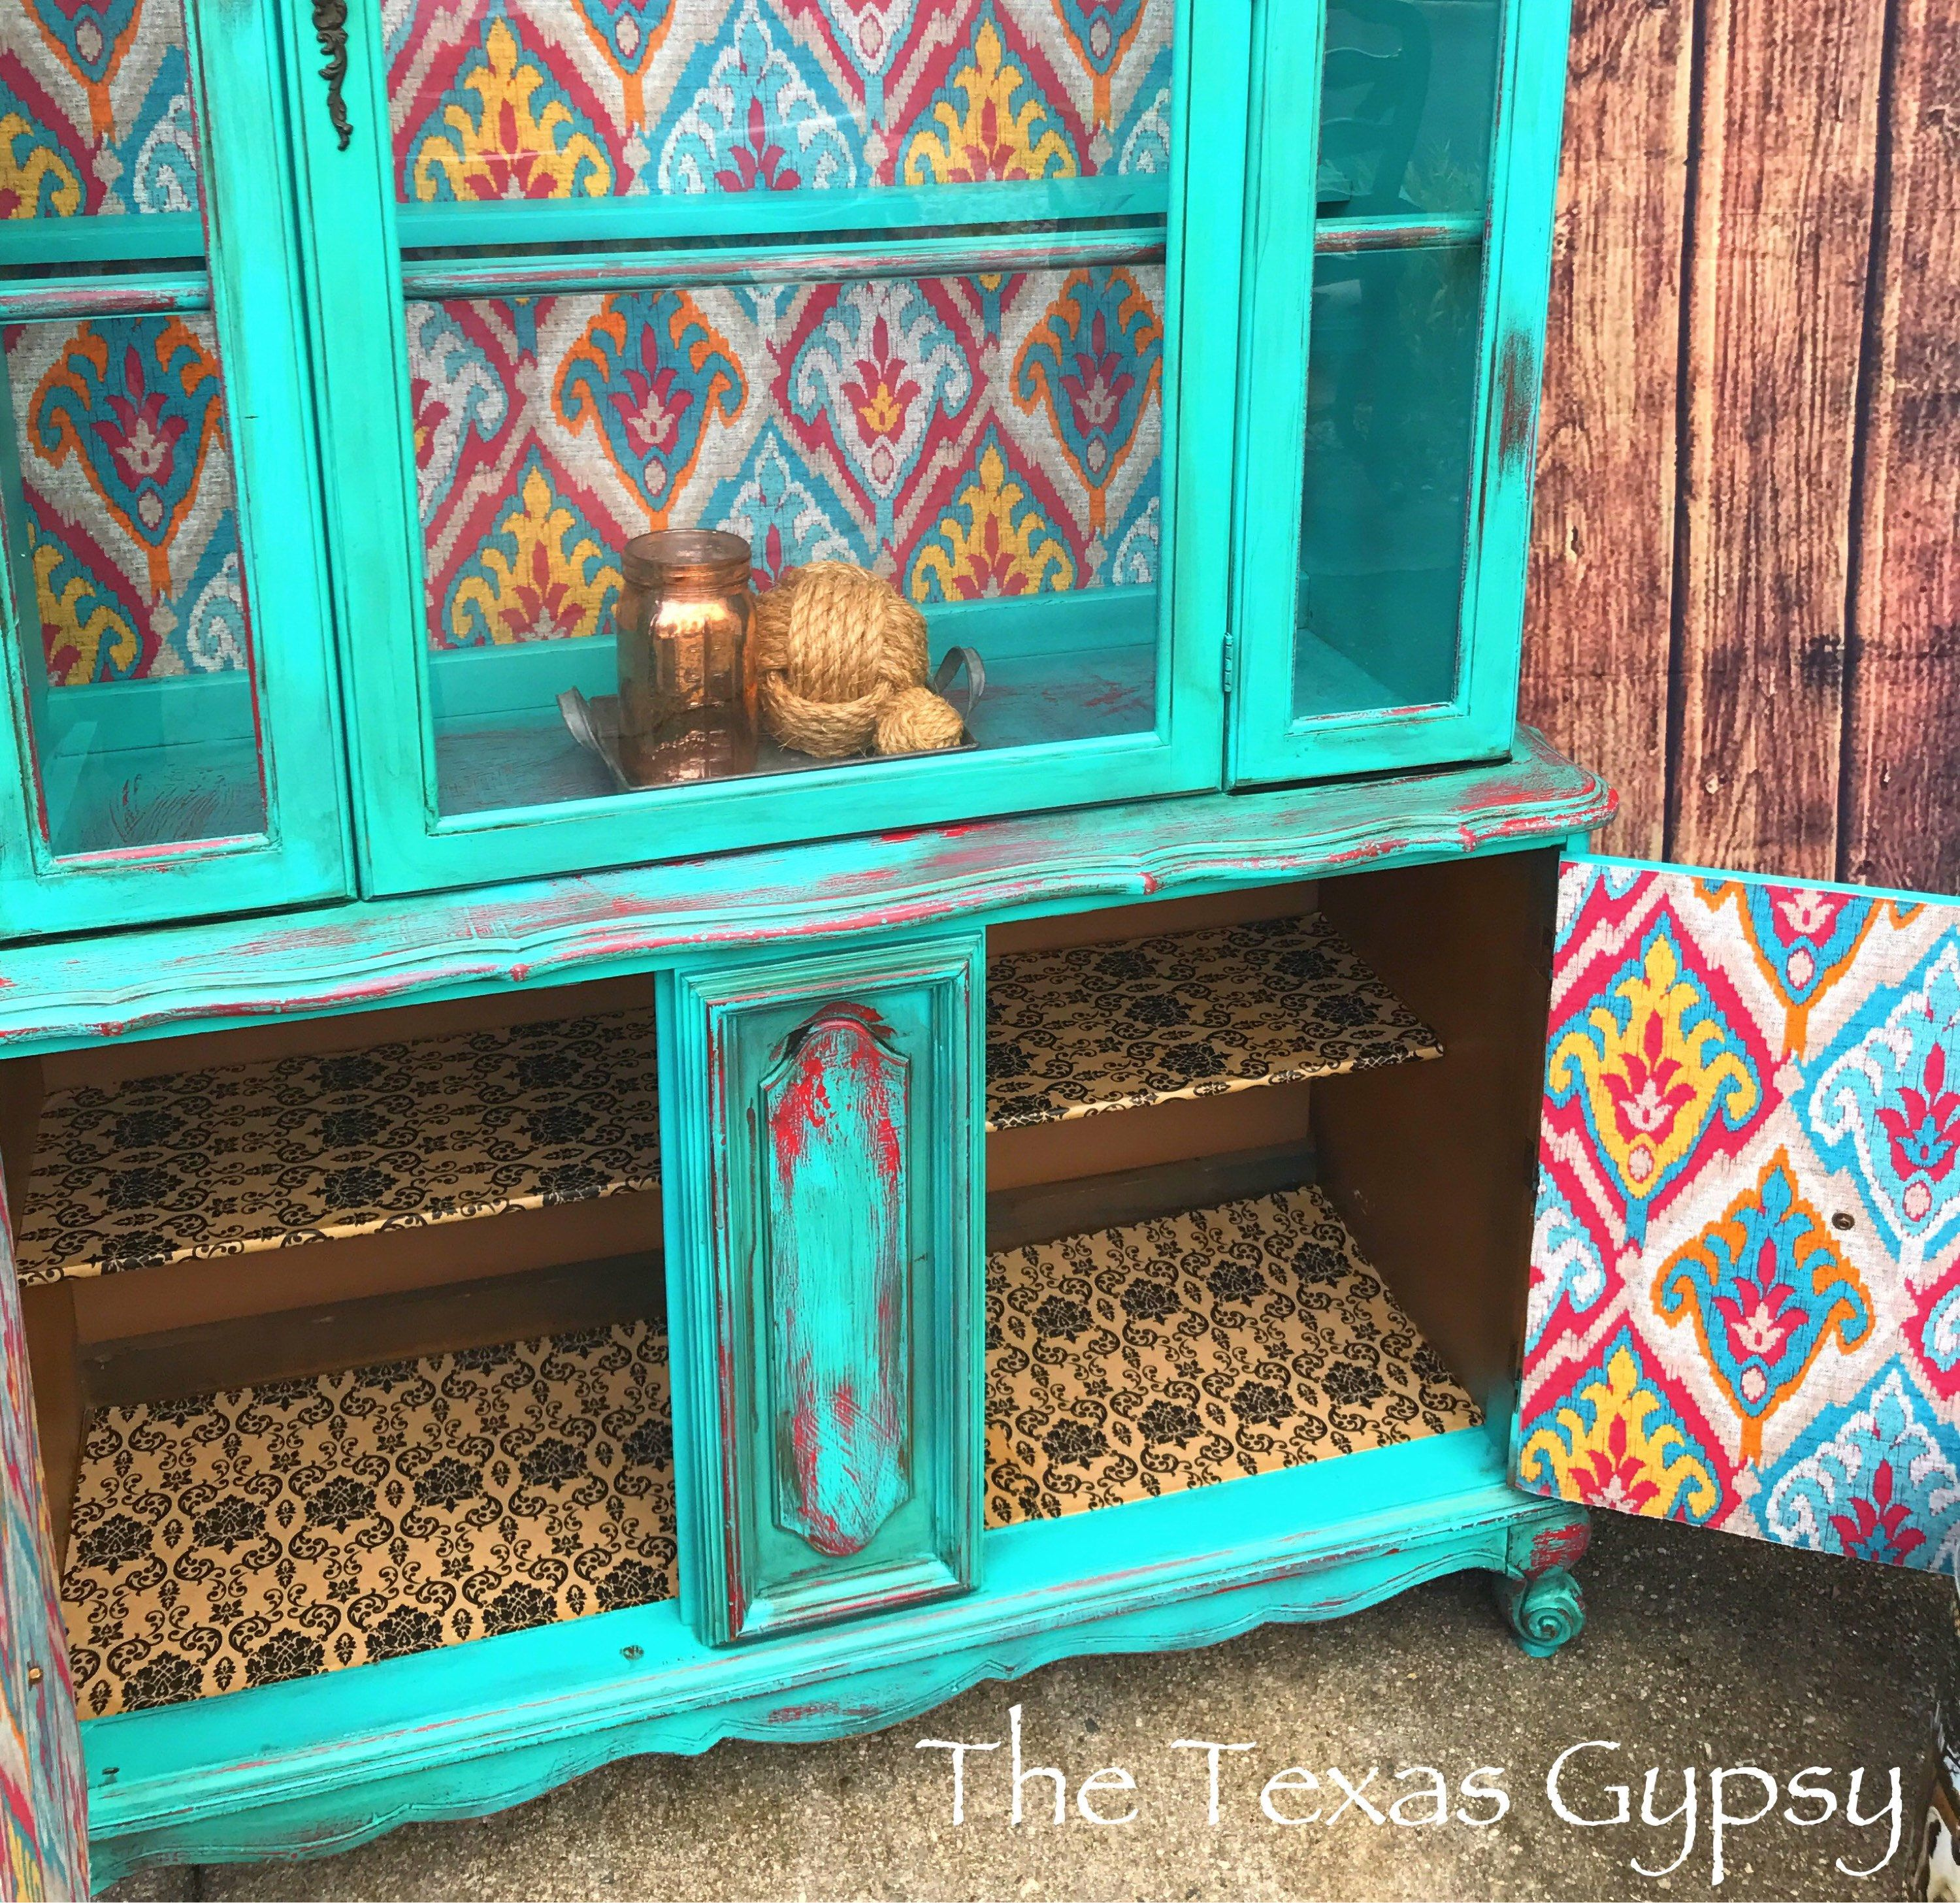 Boho French Provincial China Cabinet Hutch Rustic Teal Boho Gypsy Chic Distressed Turquoise Red